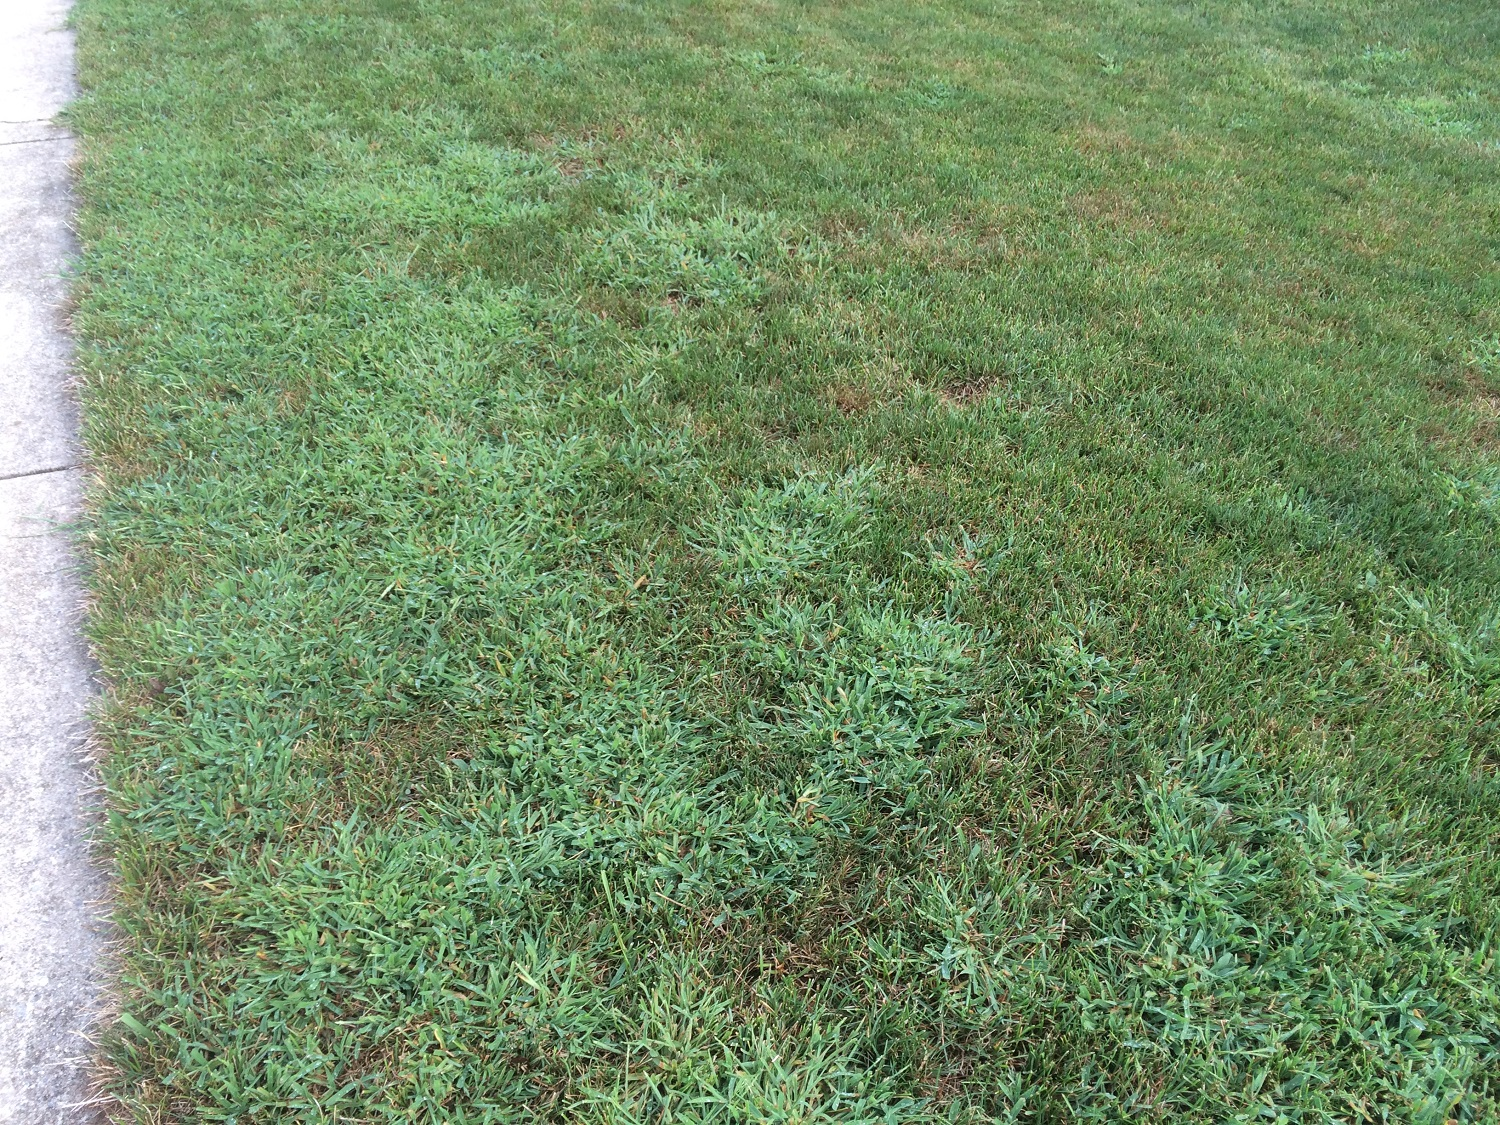 Crabgrass weed in lawn